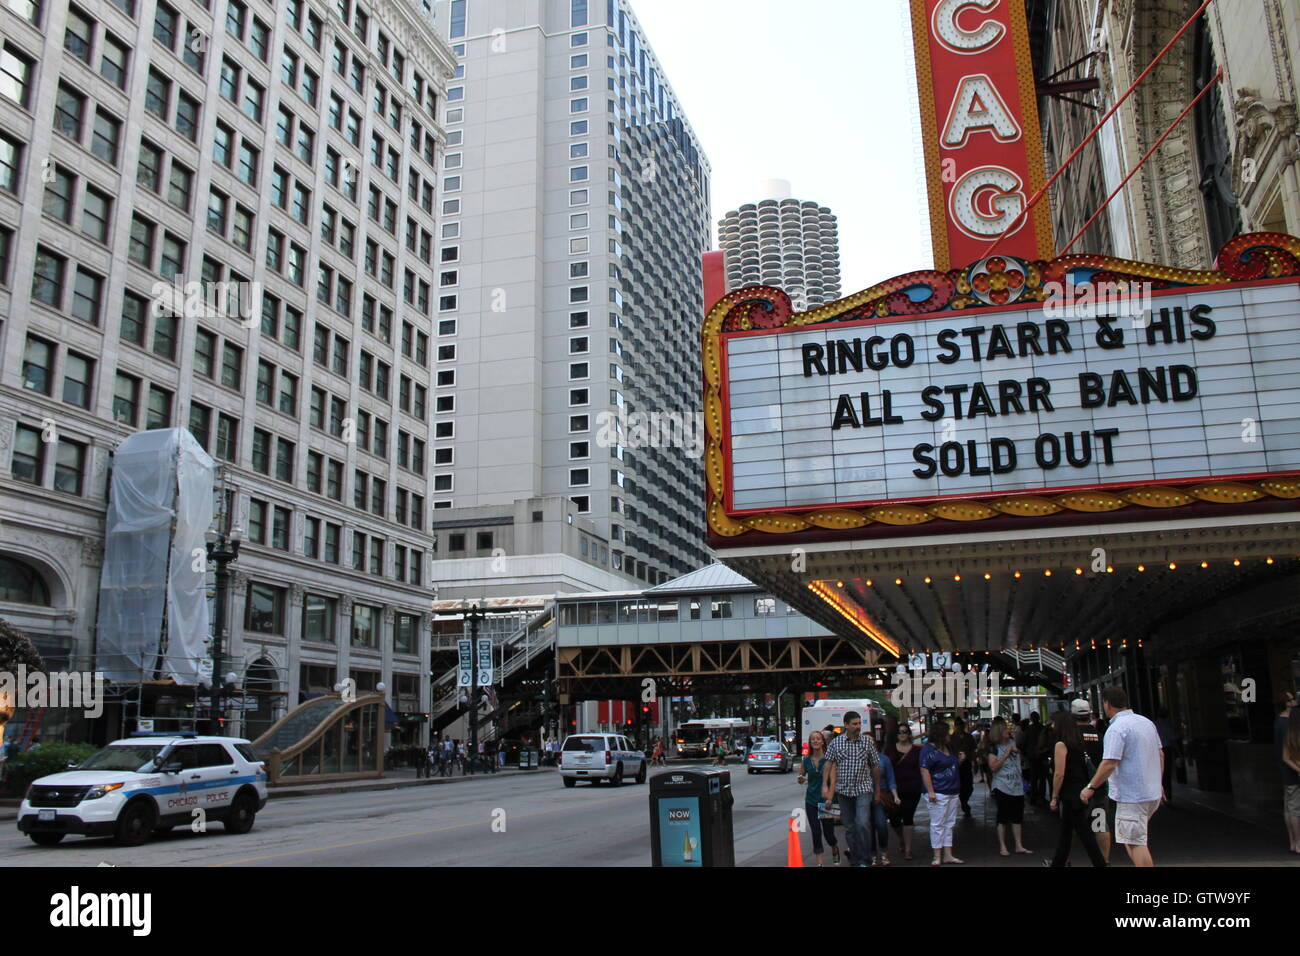 The Chicago Theater on State Street in Chicago, IL - Stock Image